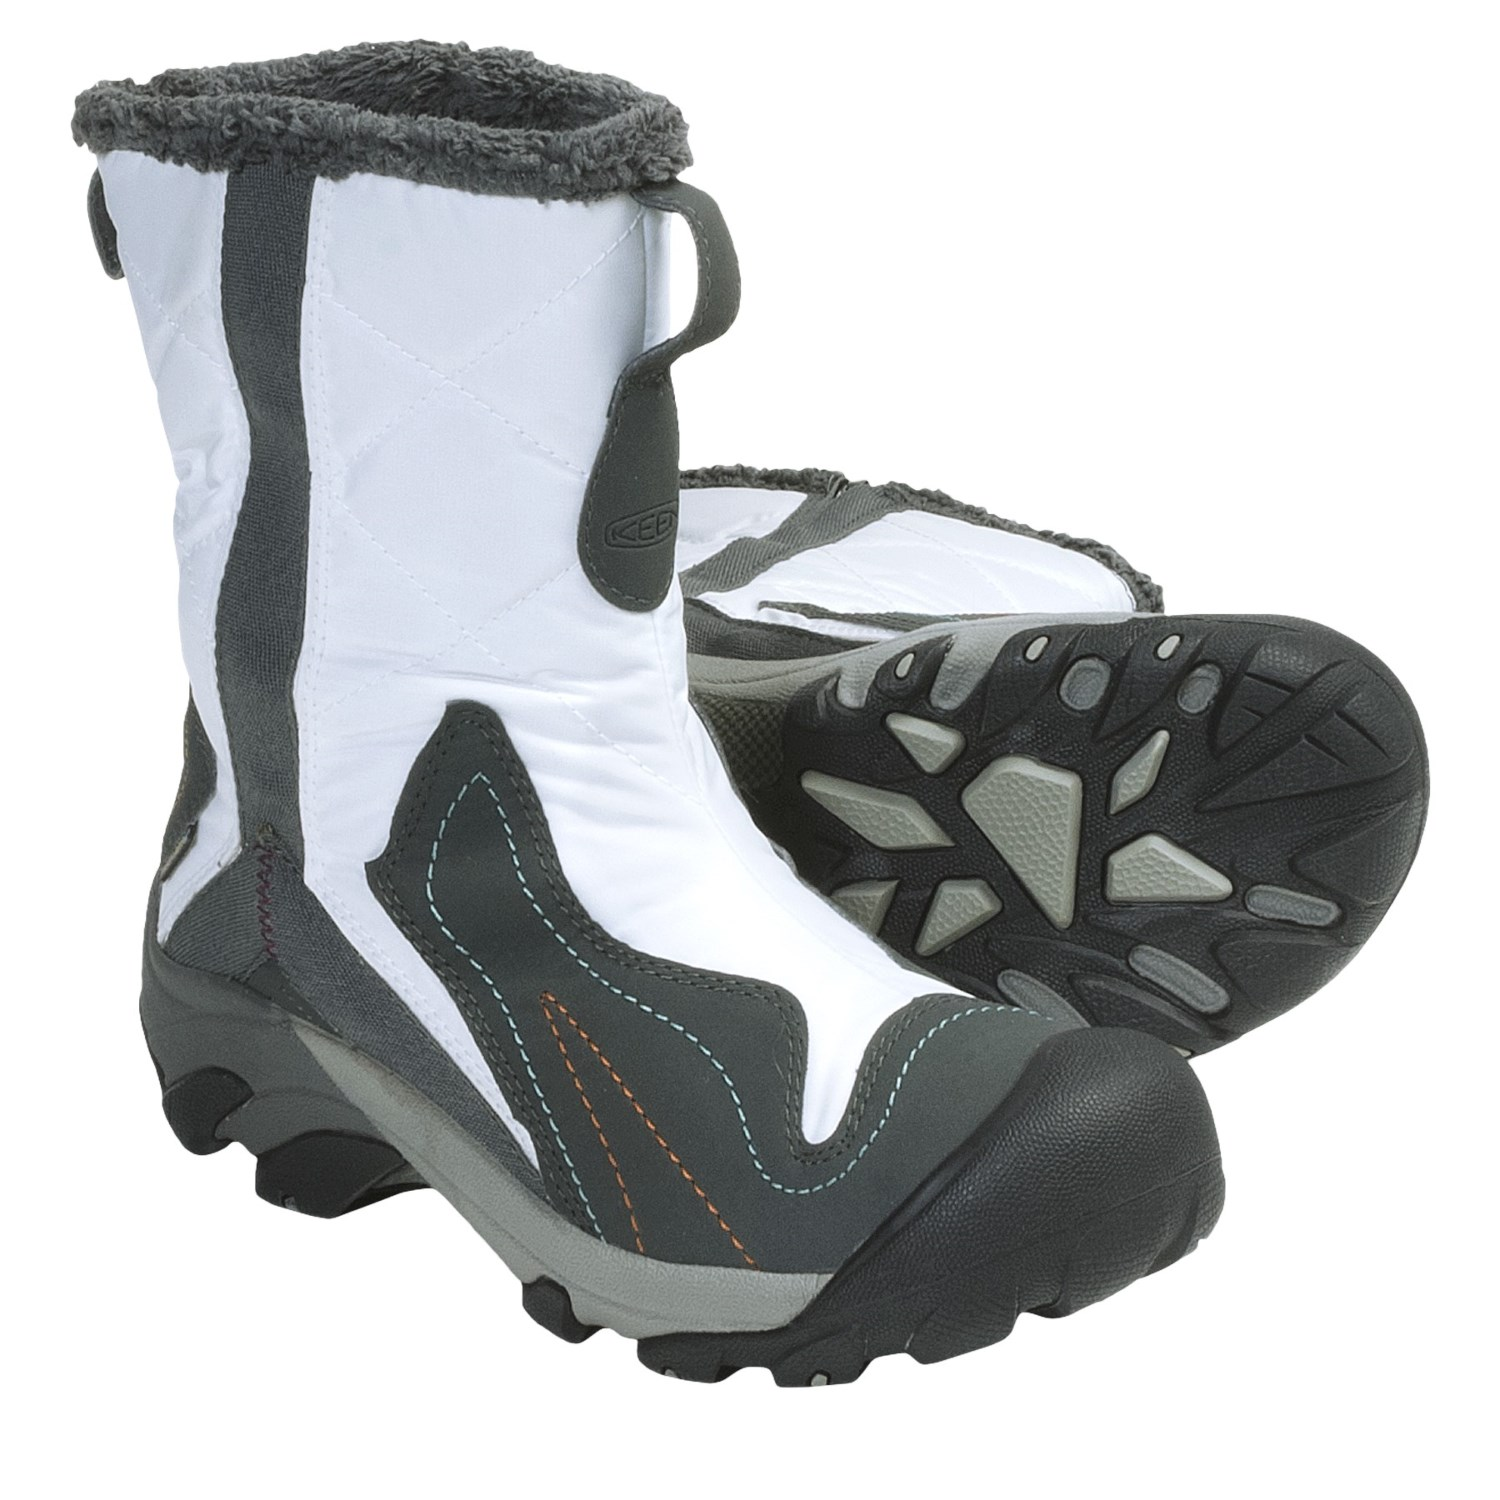 Keen Betty Boot Snow Boots Waterproof Insulated For